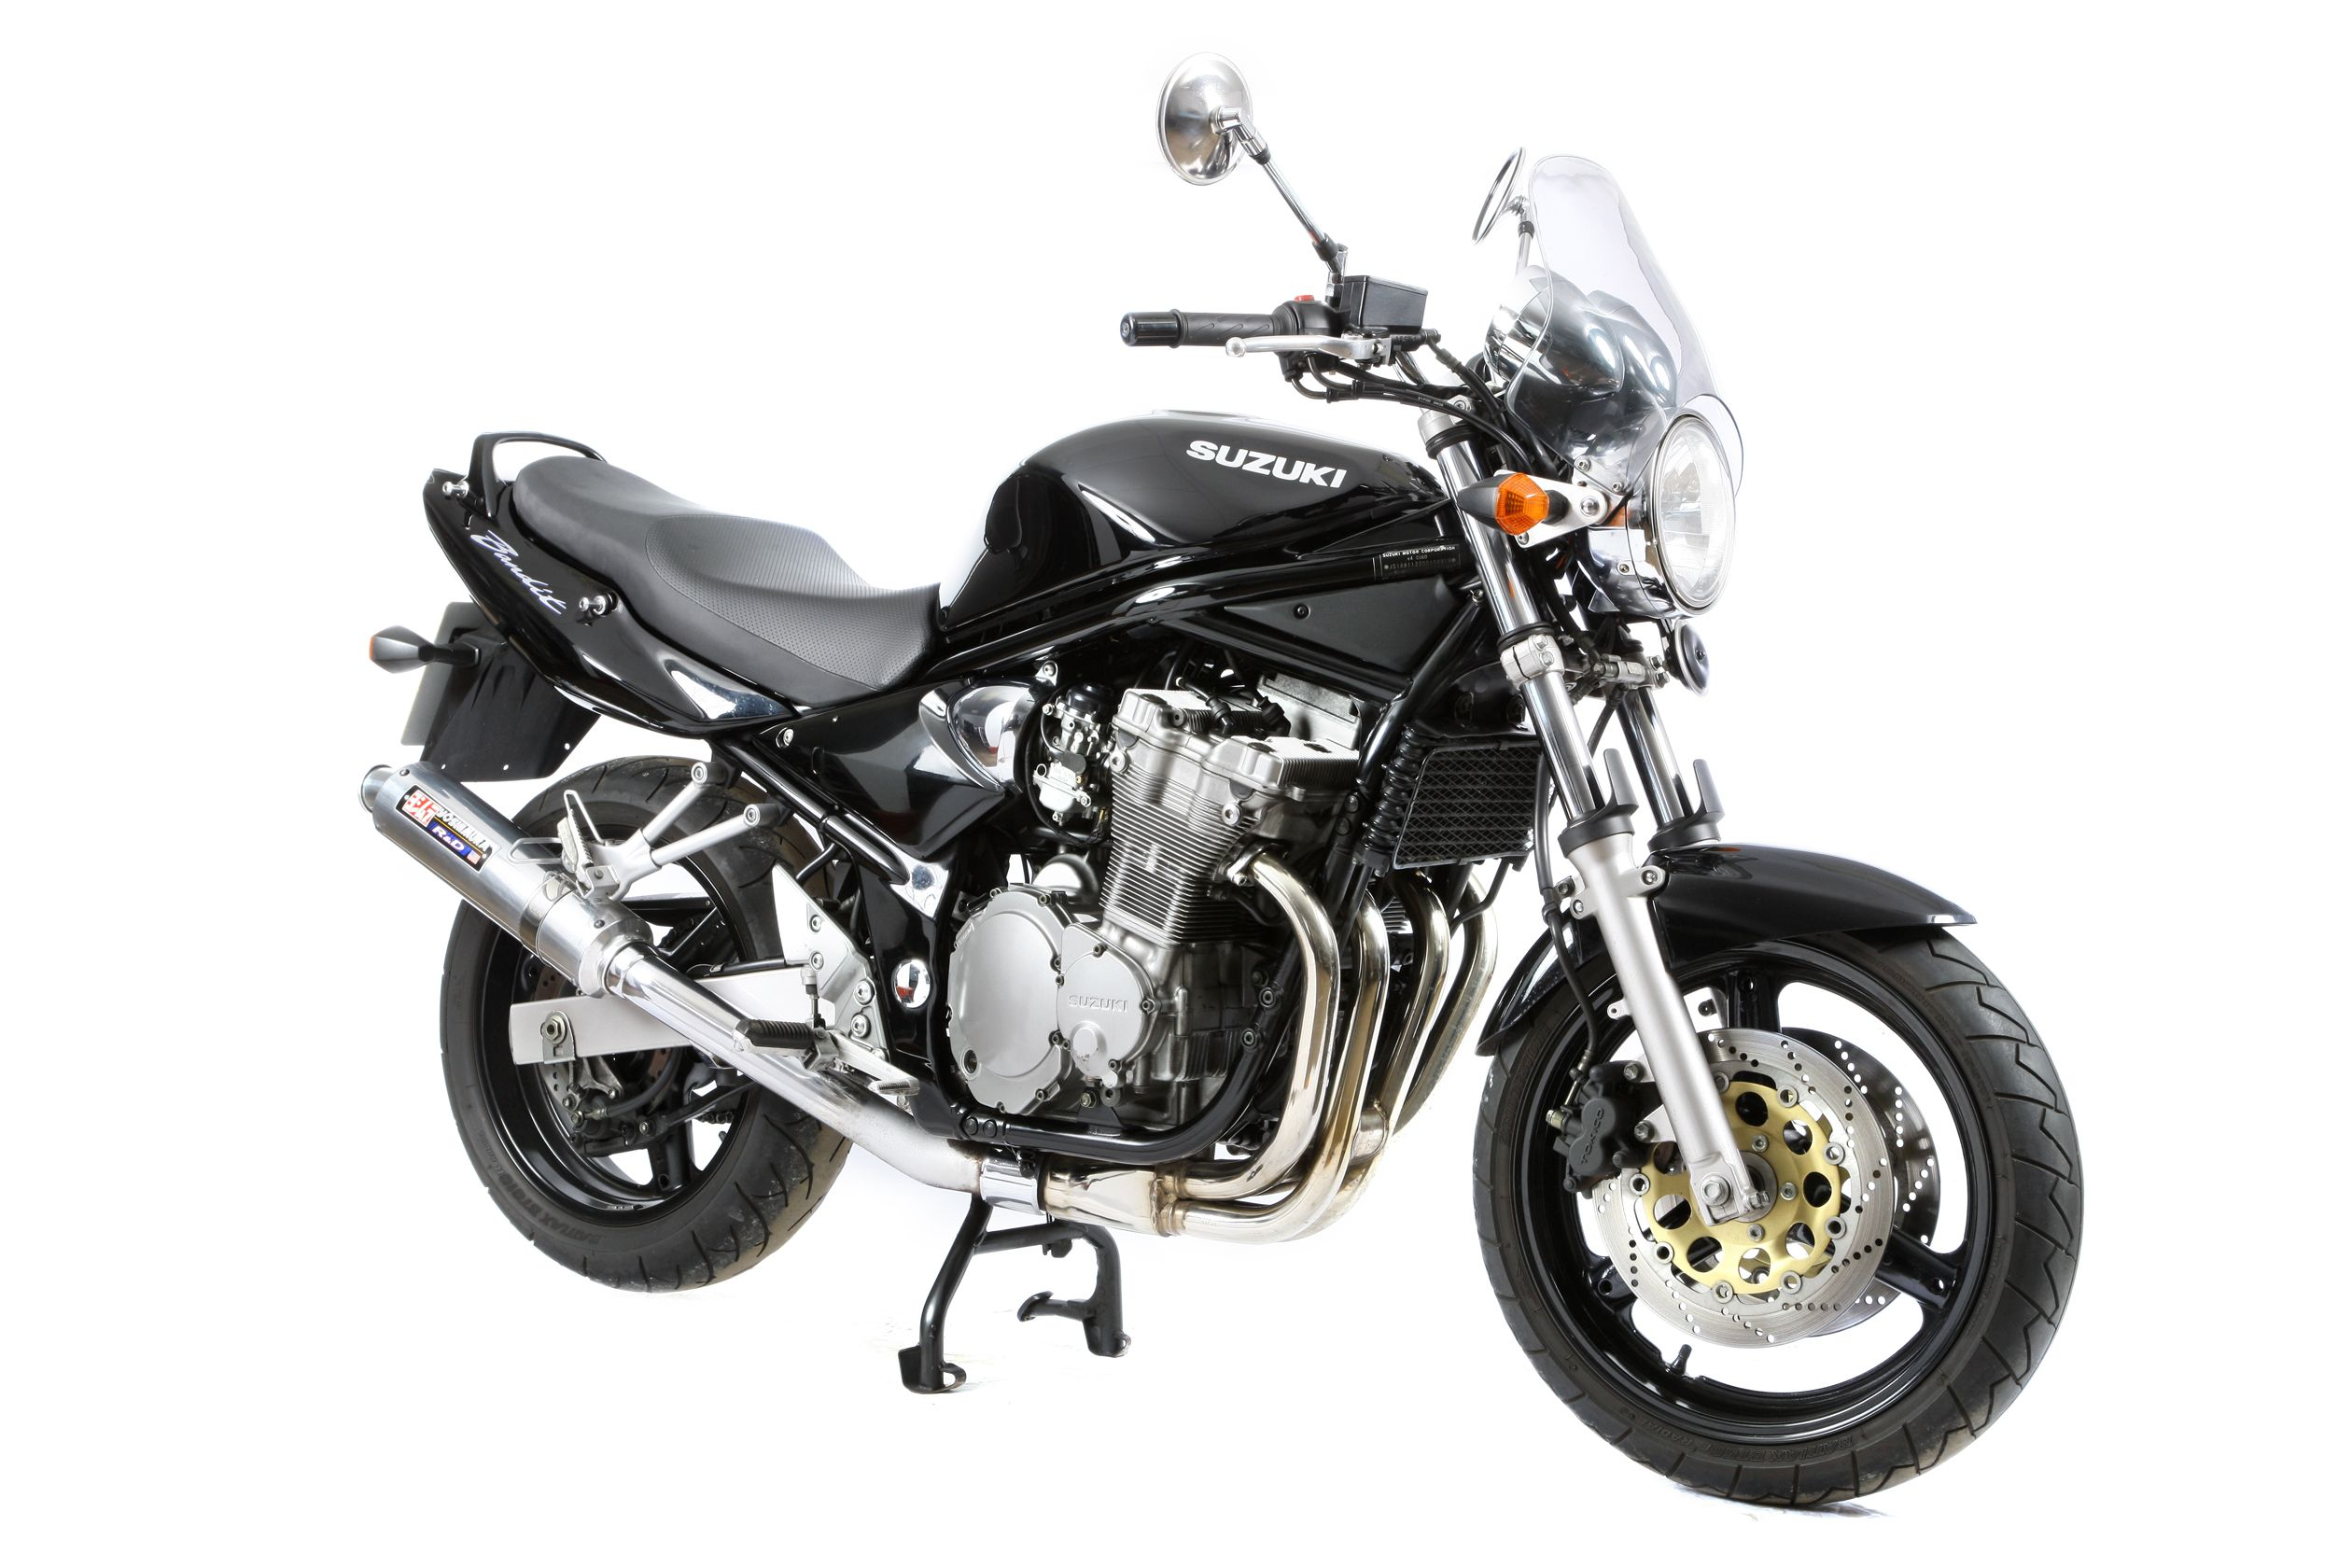 suzuki gsf 600 bandit what a beauty wouldn 39 t i love. Black Bedroom Furniture Sets. Home Design Ideas